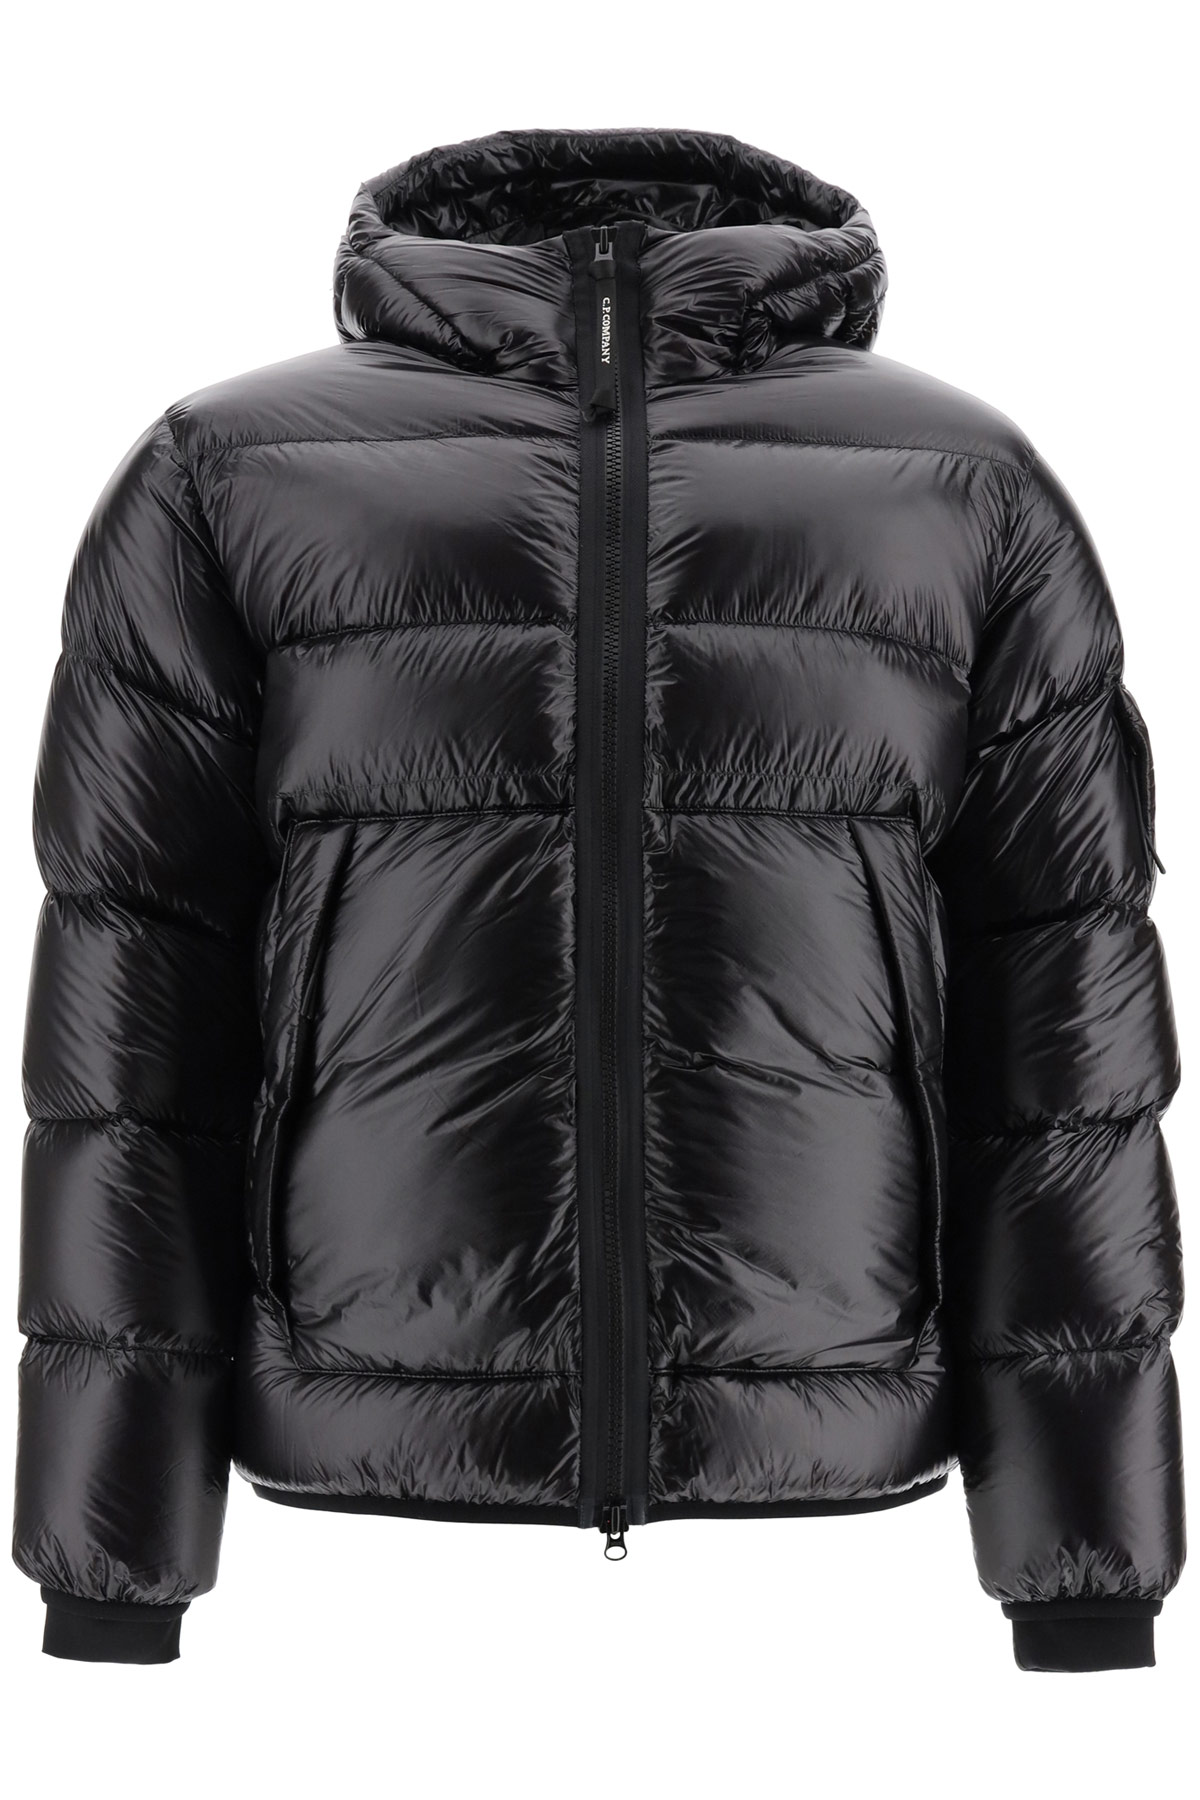 cp company down jacket with lens 48 black